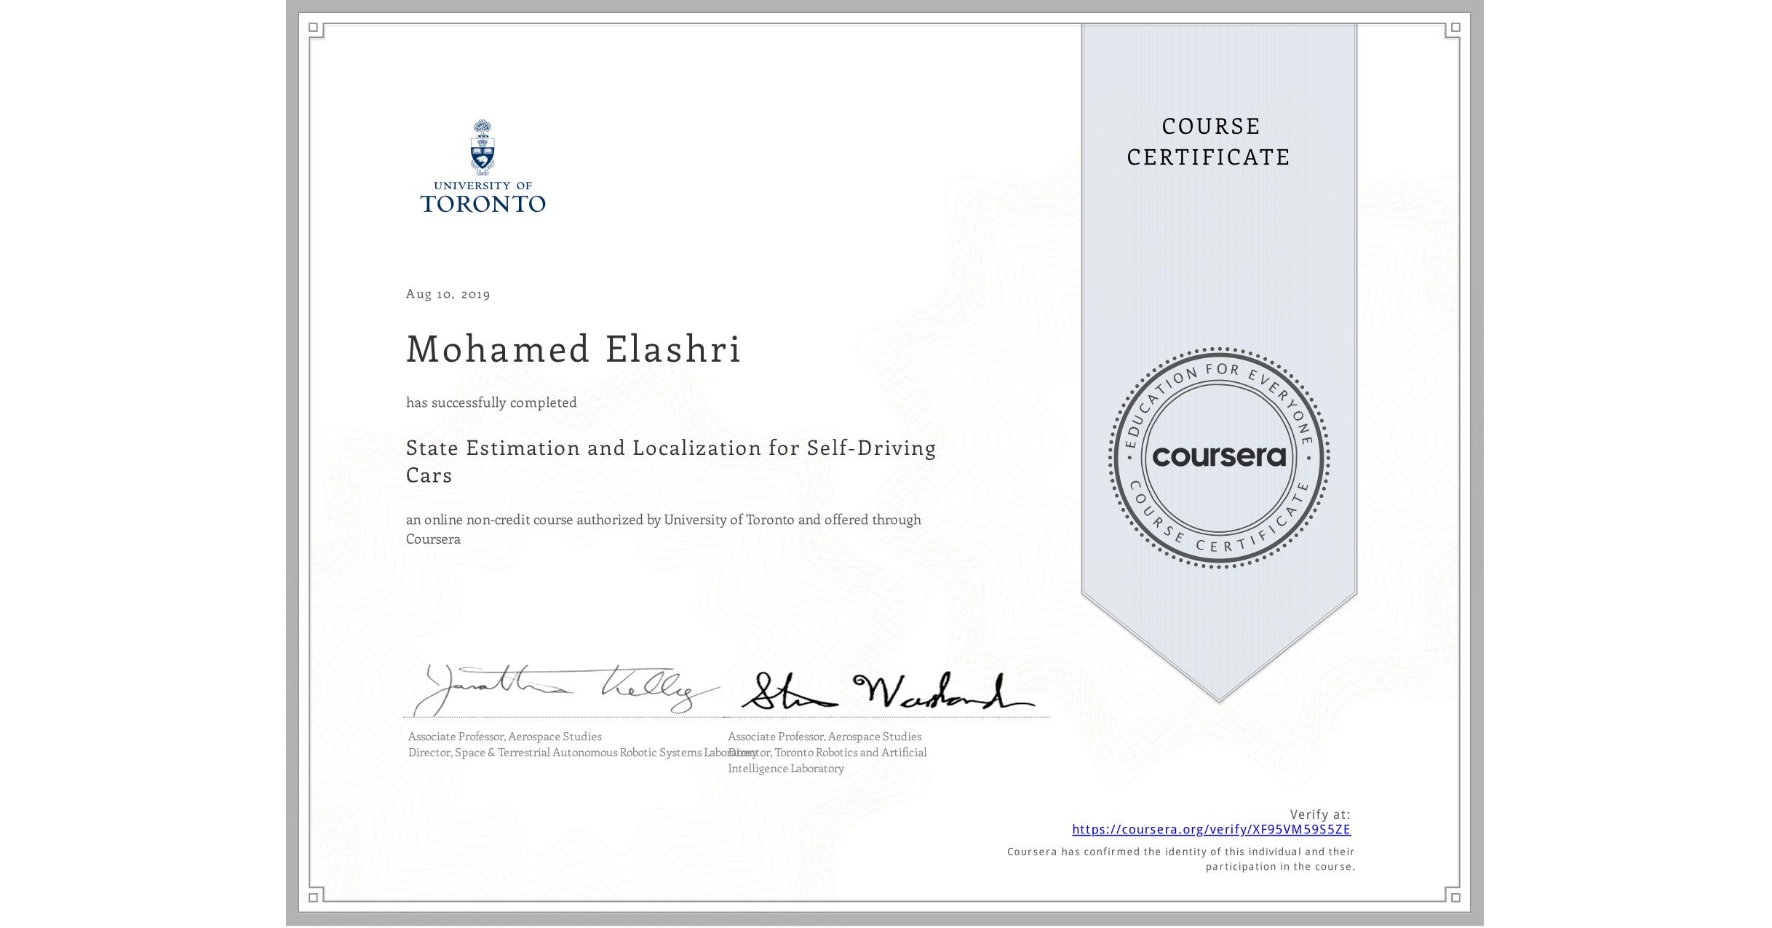 View certificate for Mohamed Elashri, State Estimation and Localization for Self-Driving Cars, an online non-credit course authorized by University of Toronto and offered through Coursera